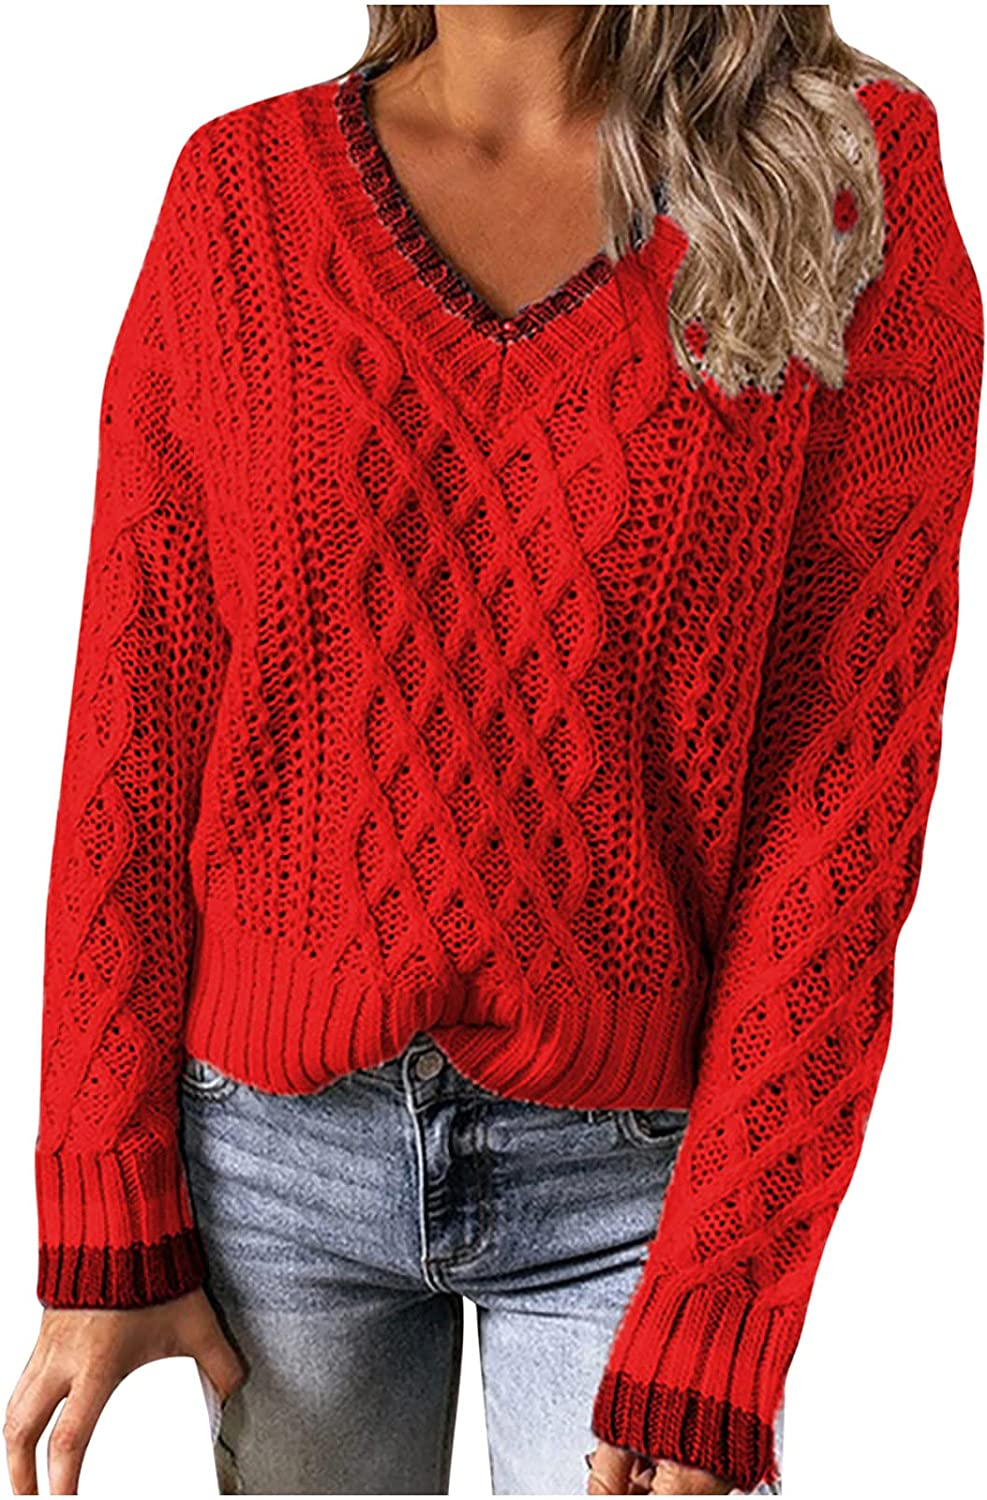 Women V Neck Cable Knit Sweaters,Long Sleeve Lightweight Trendy Vintage Tops,Solid Office Oversized Pullover for Work